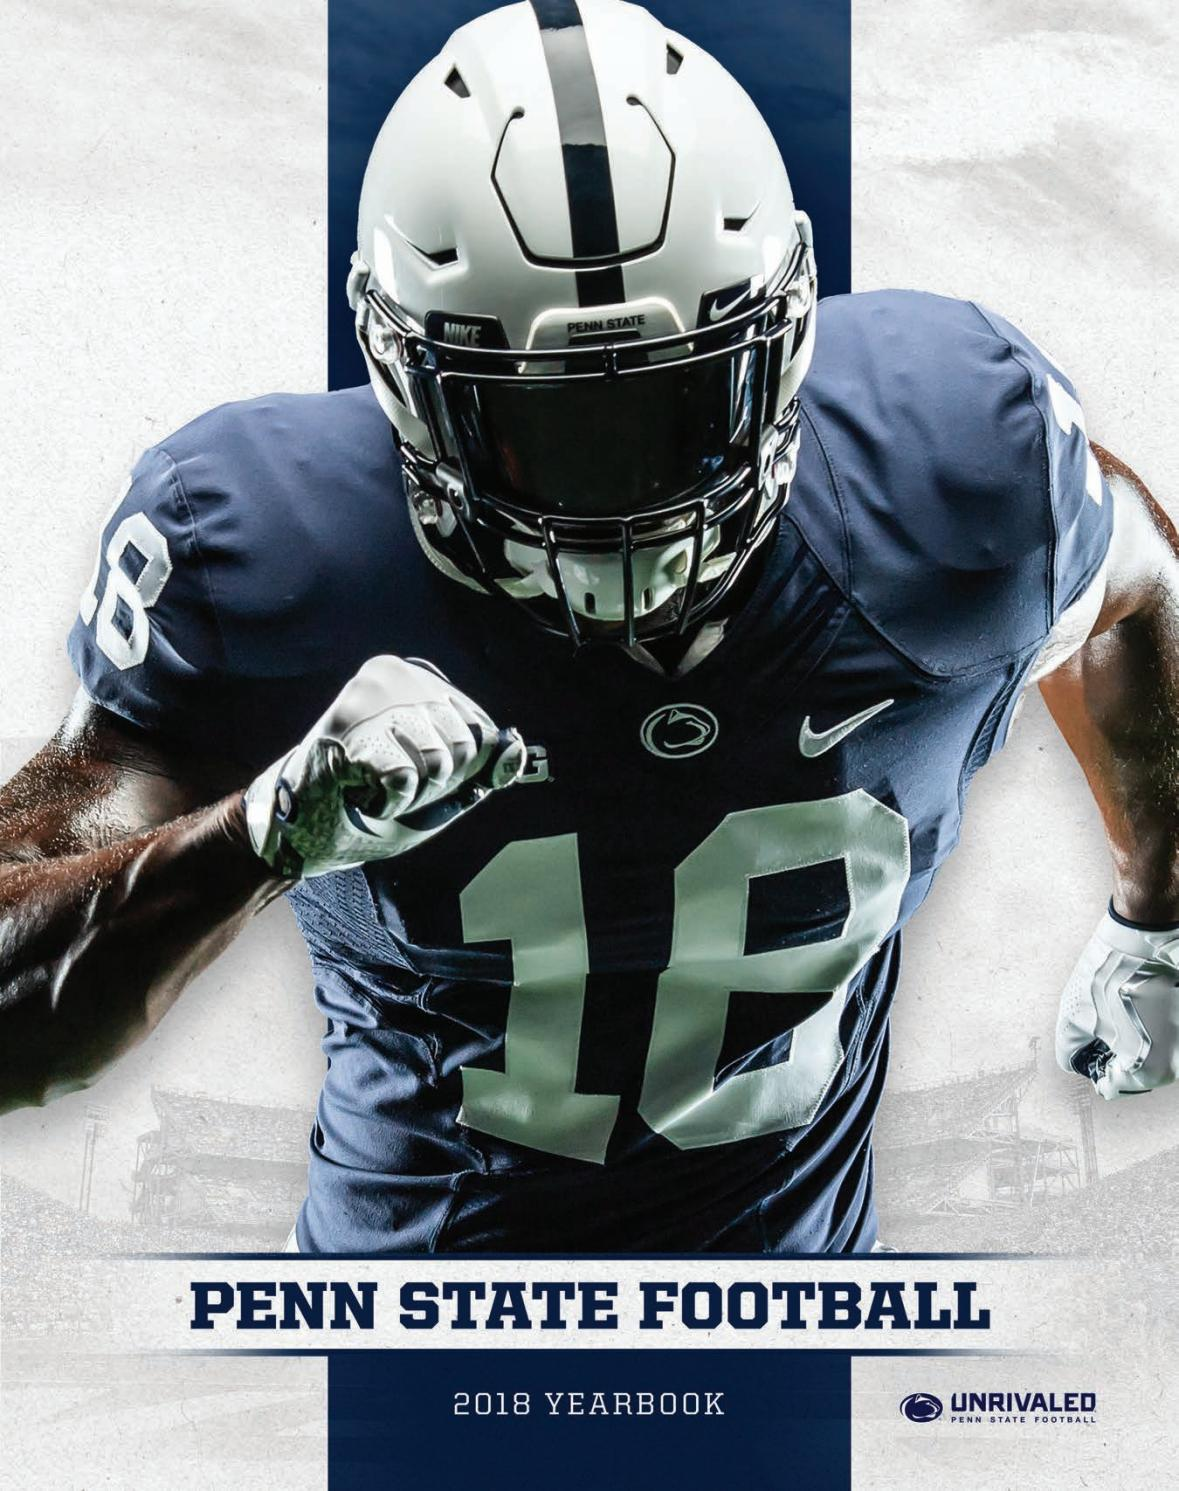 83bcb17c6d11 2018 Penn State Football Yearbook by Penn State Athletics - issuu